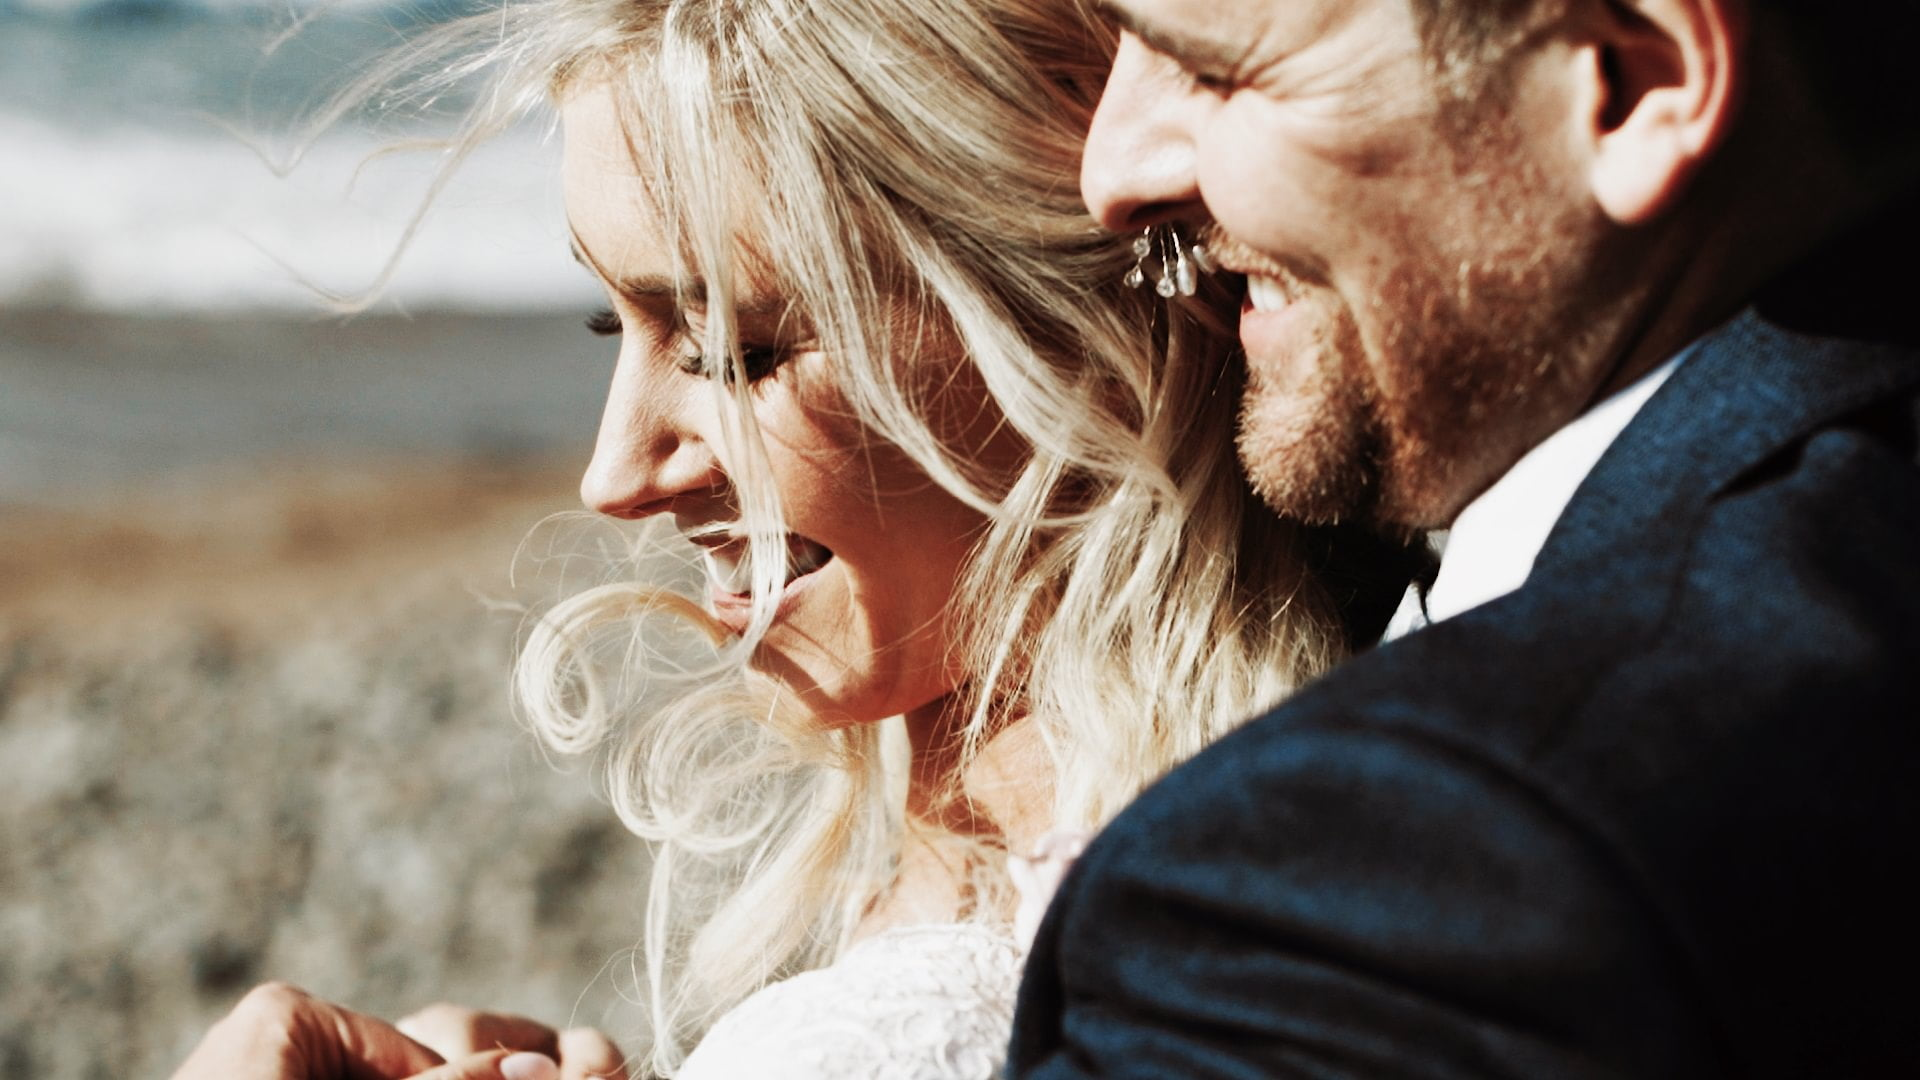 Dublin Wedding videographer